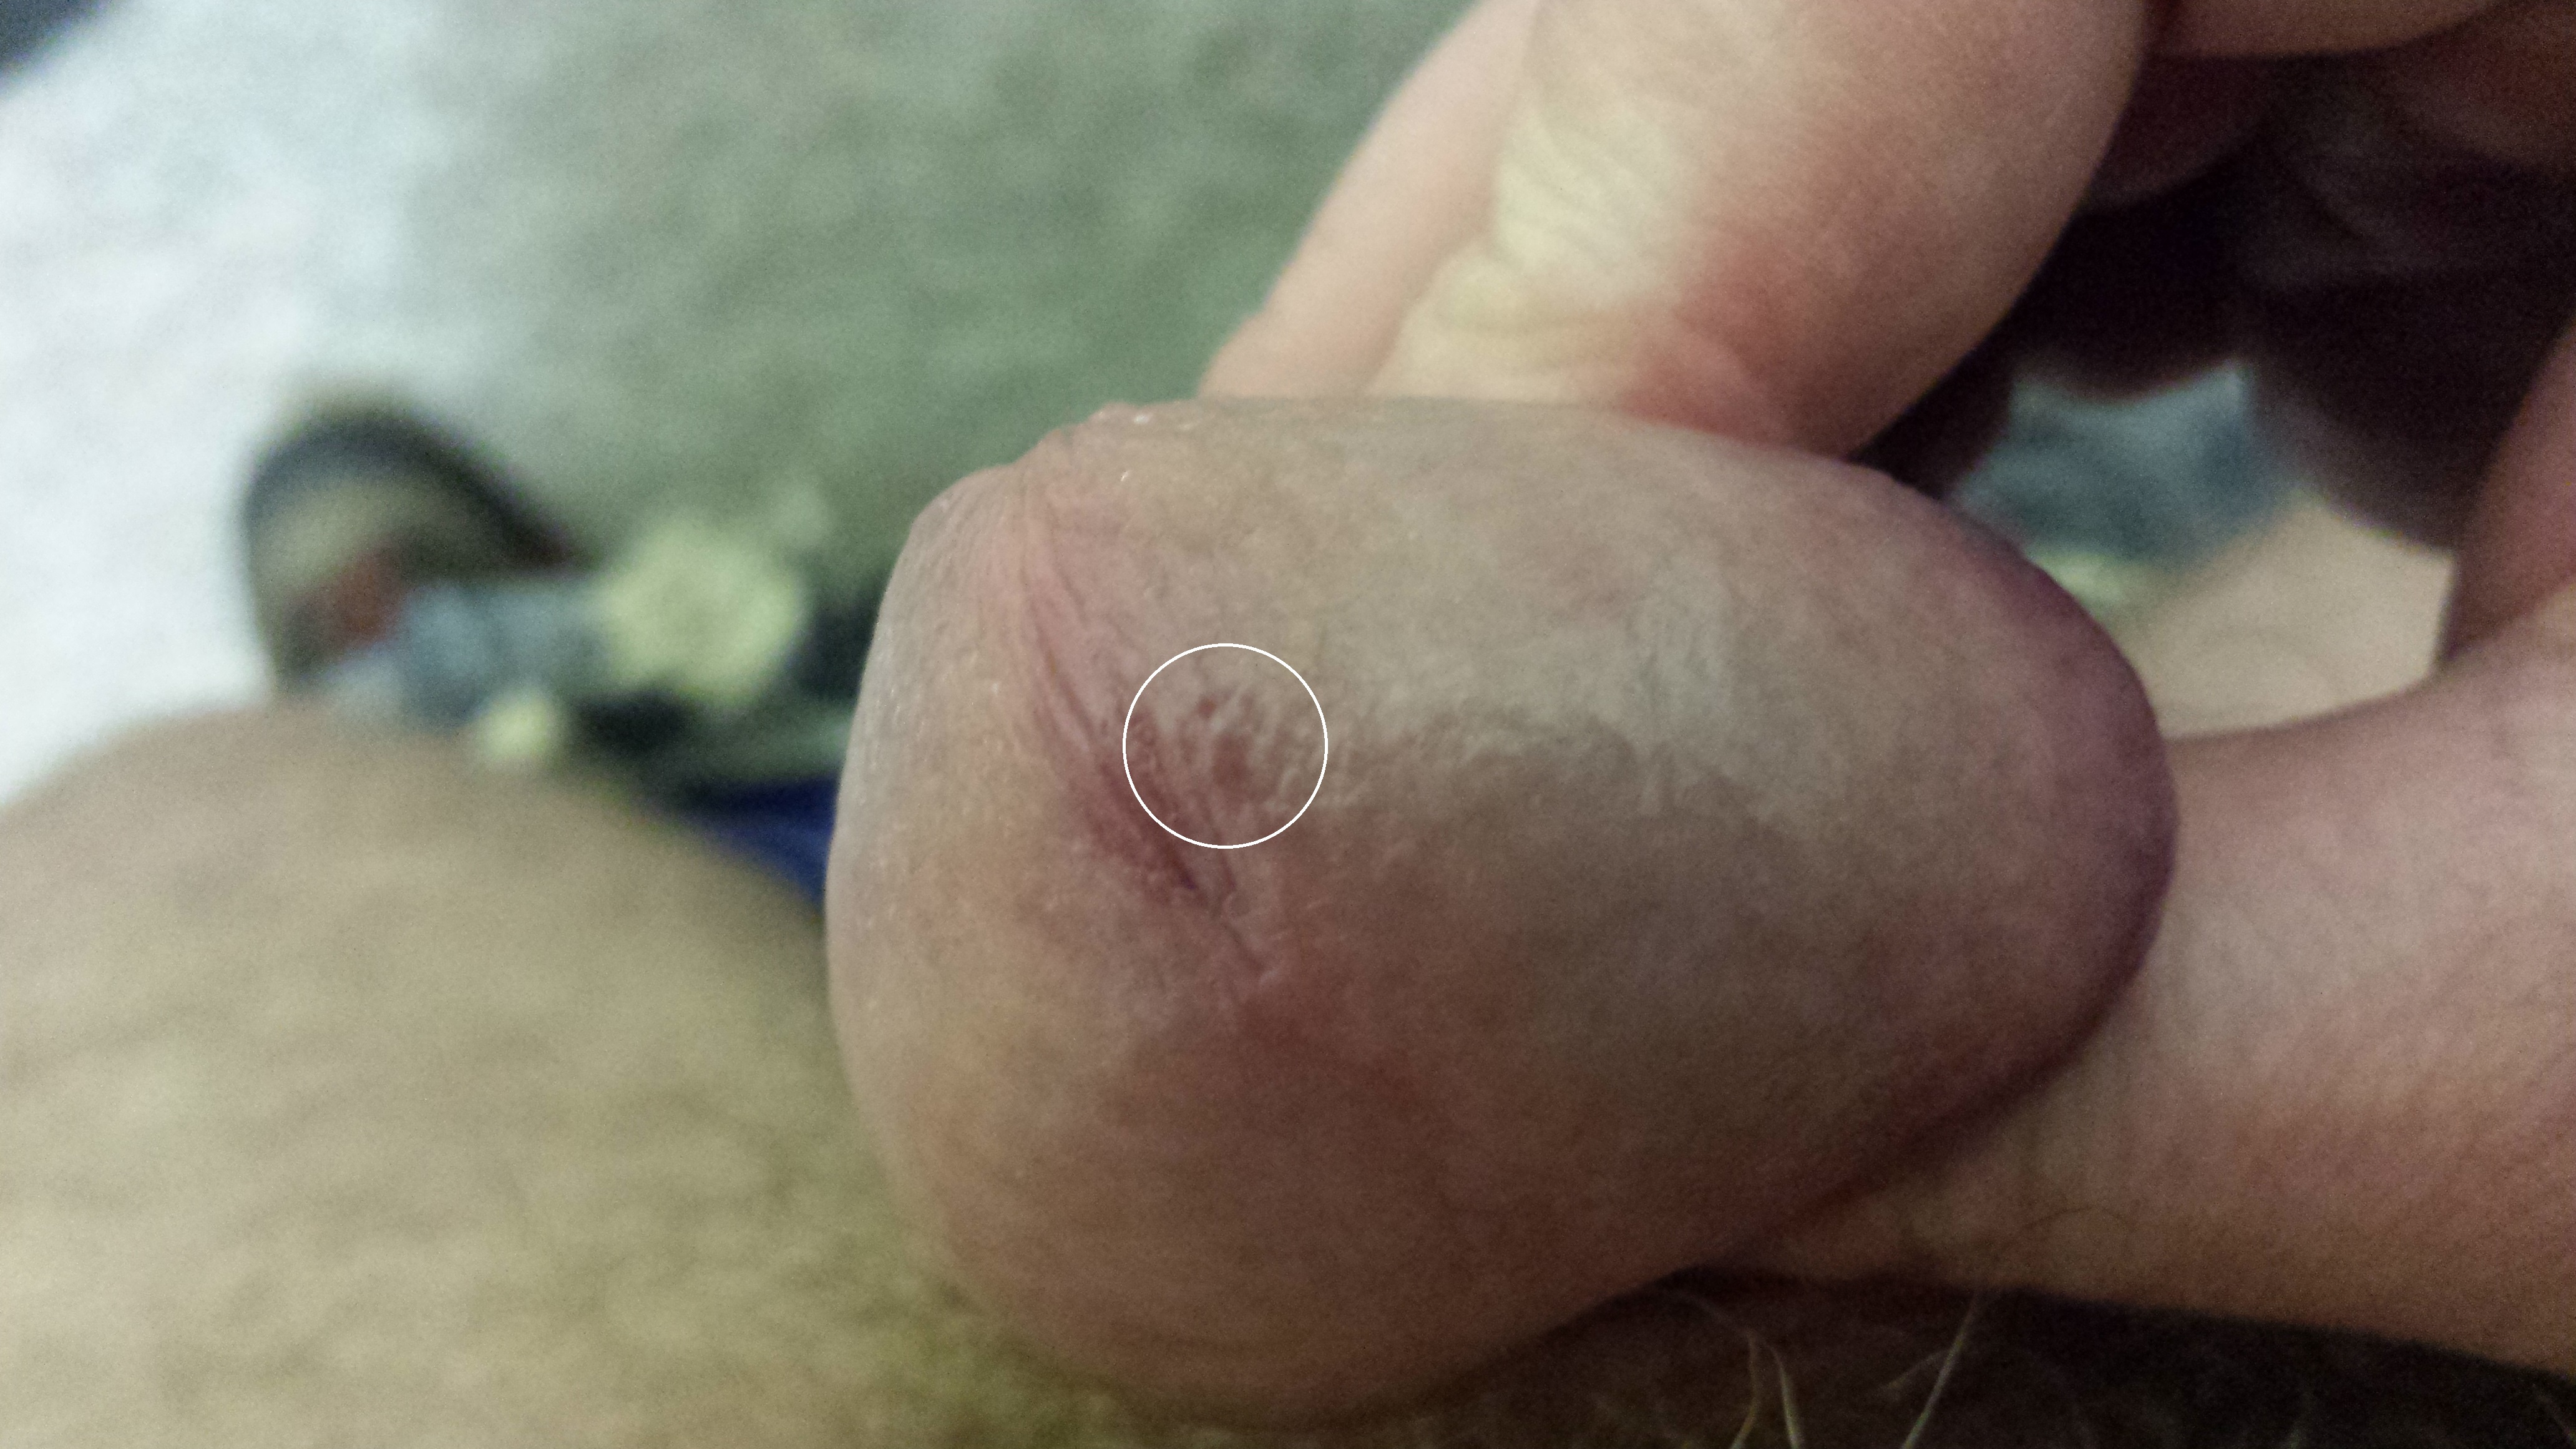 Small pimples on the penis itch